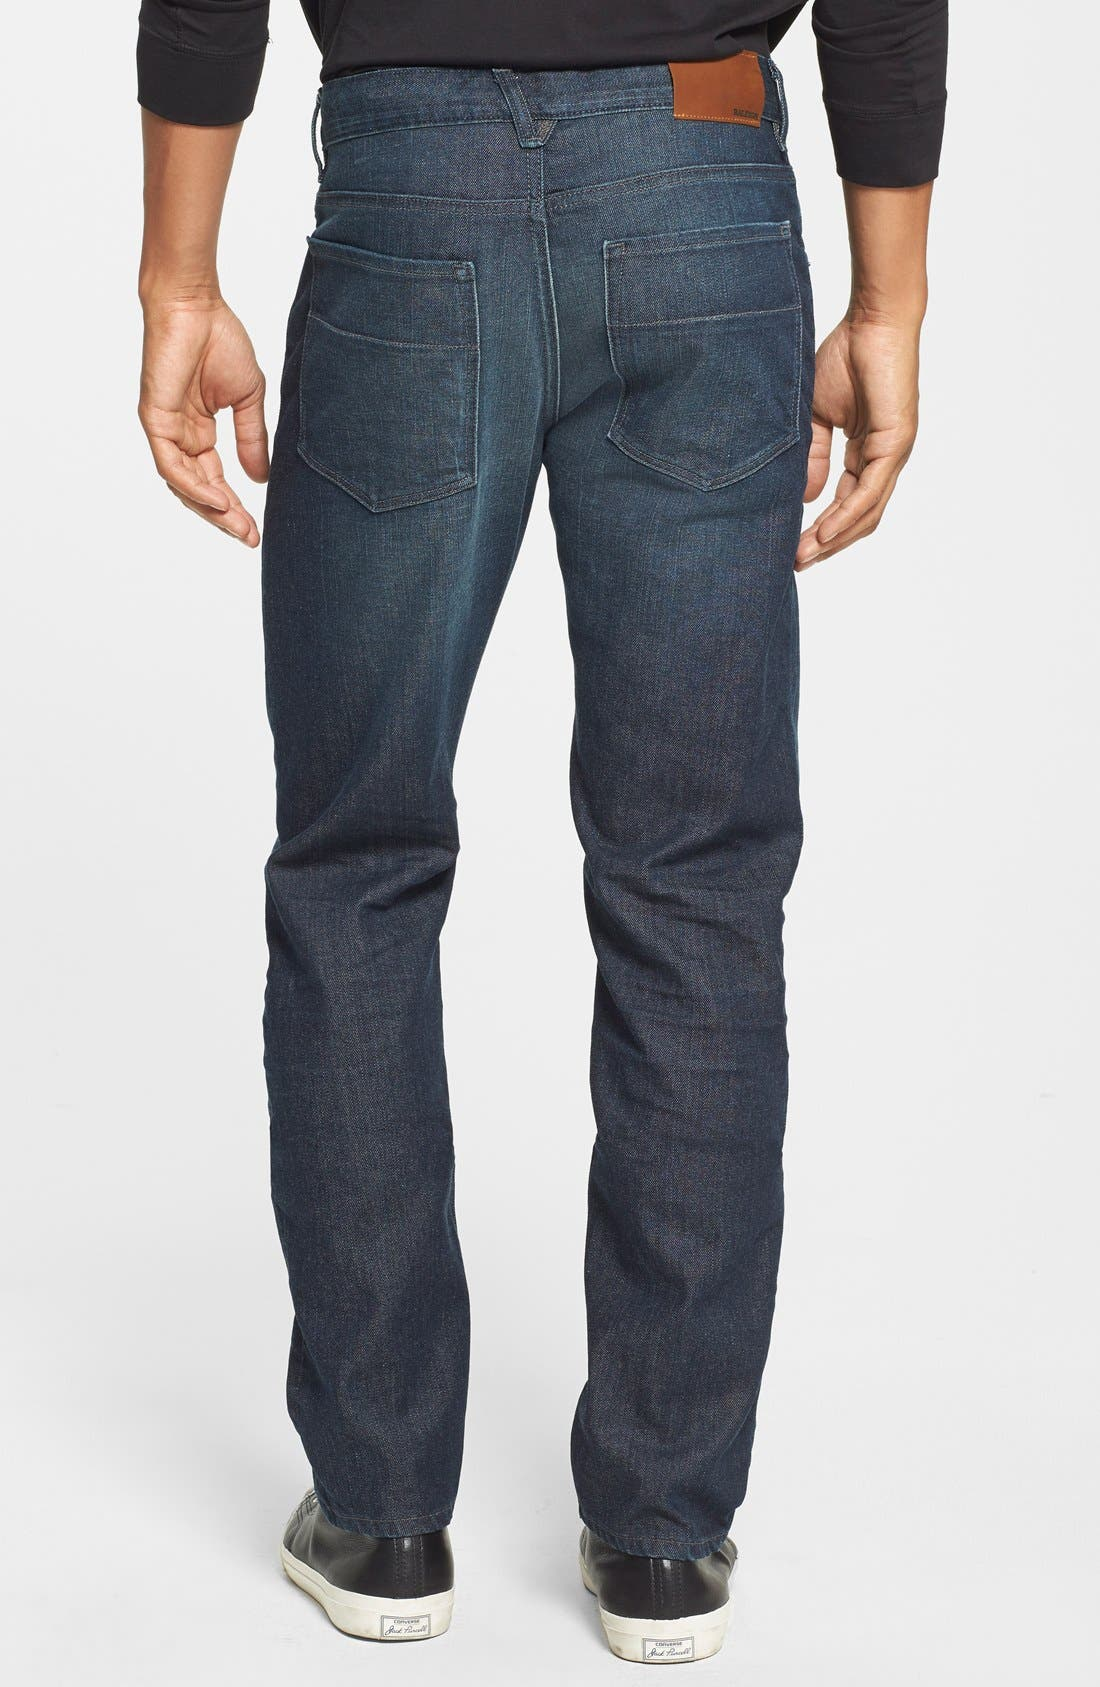 'Martin' Slim Fit Jeans,                             Alternate thumbnail 4, color,                             MASON